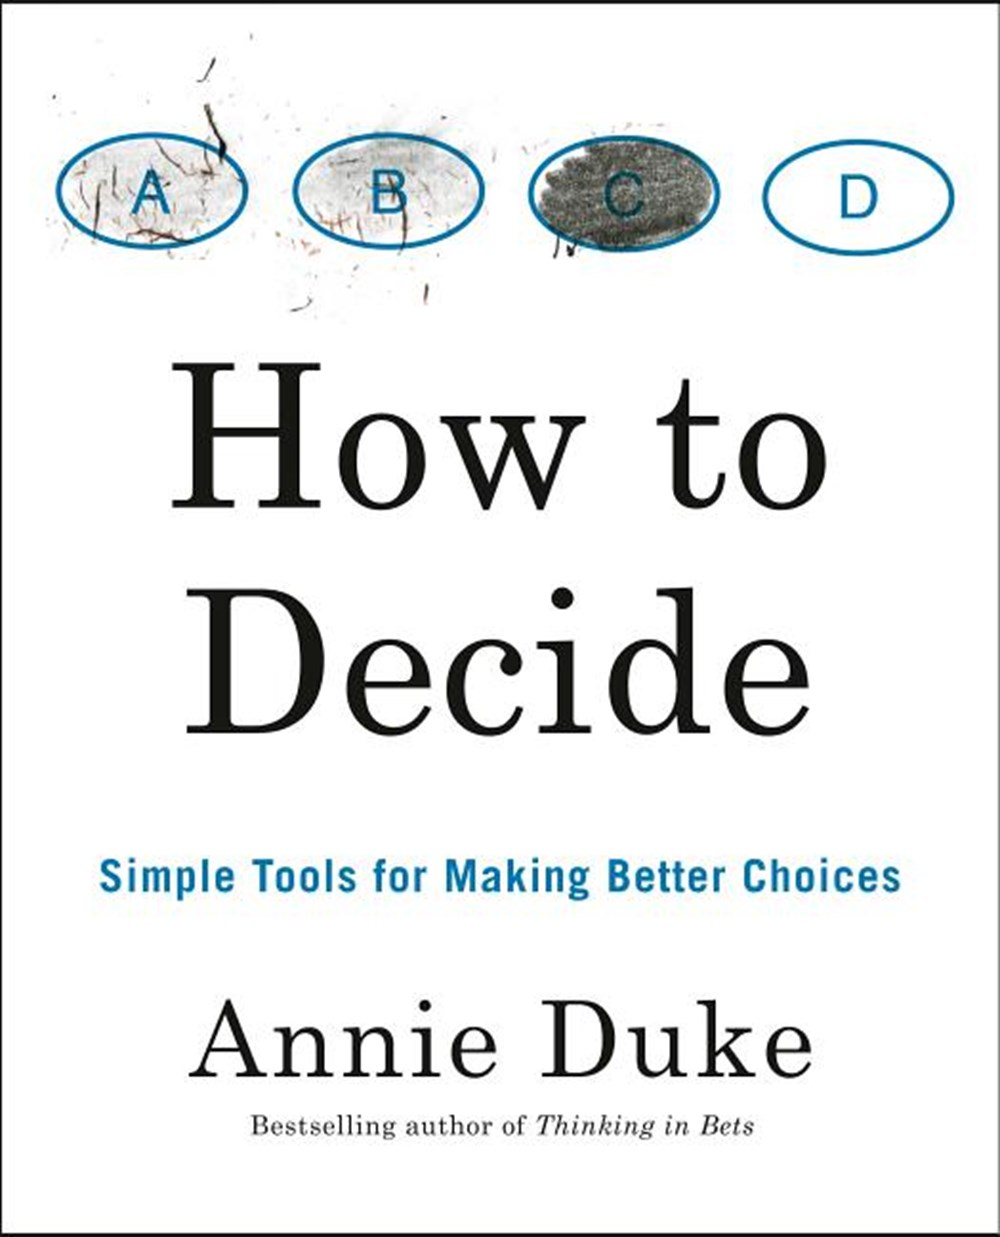 How to Decide Simple Tools for Making Better Choices